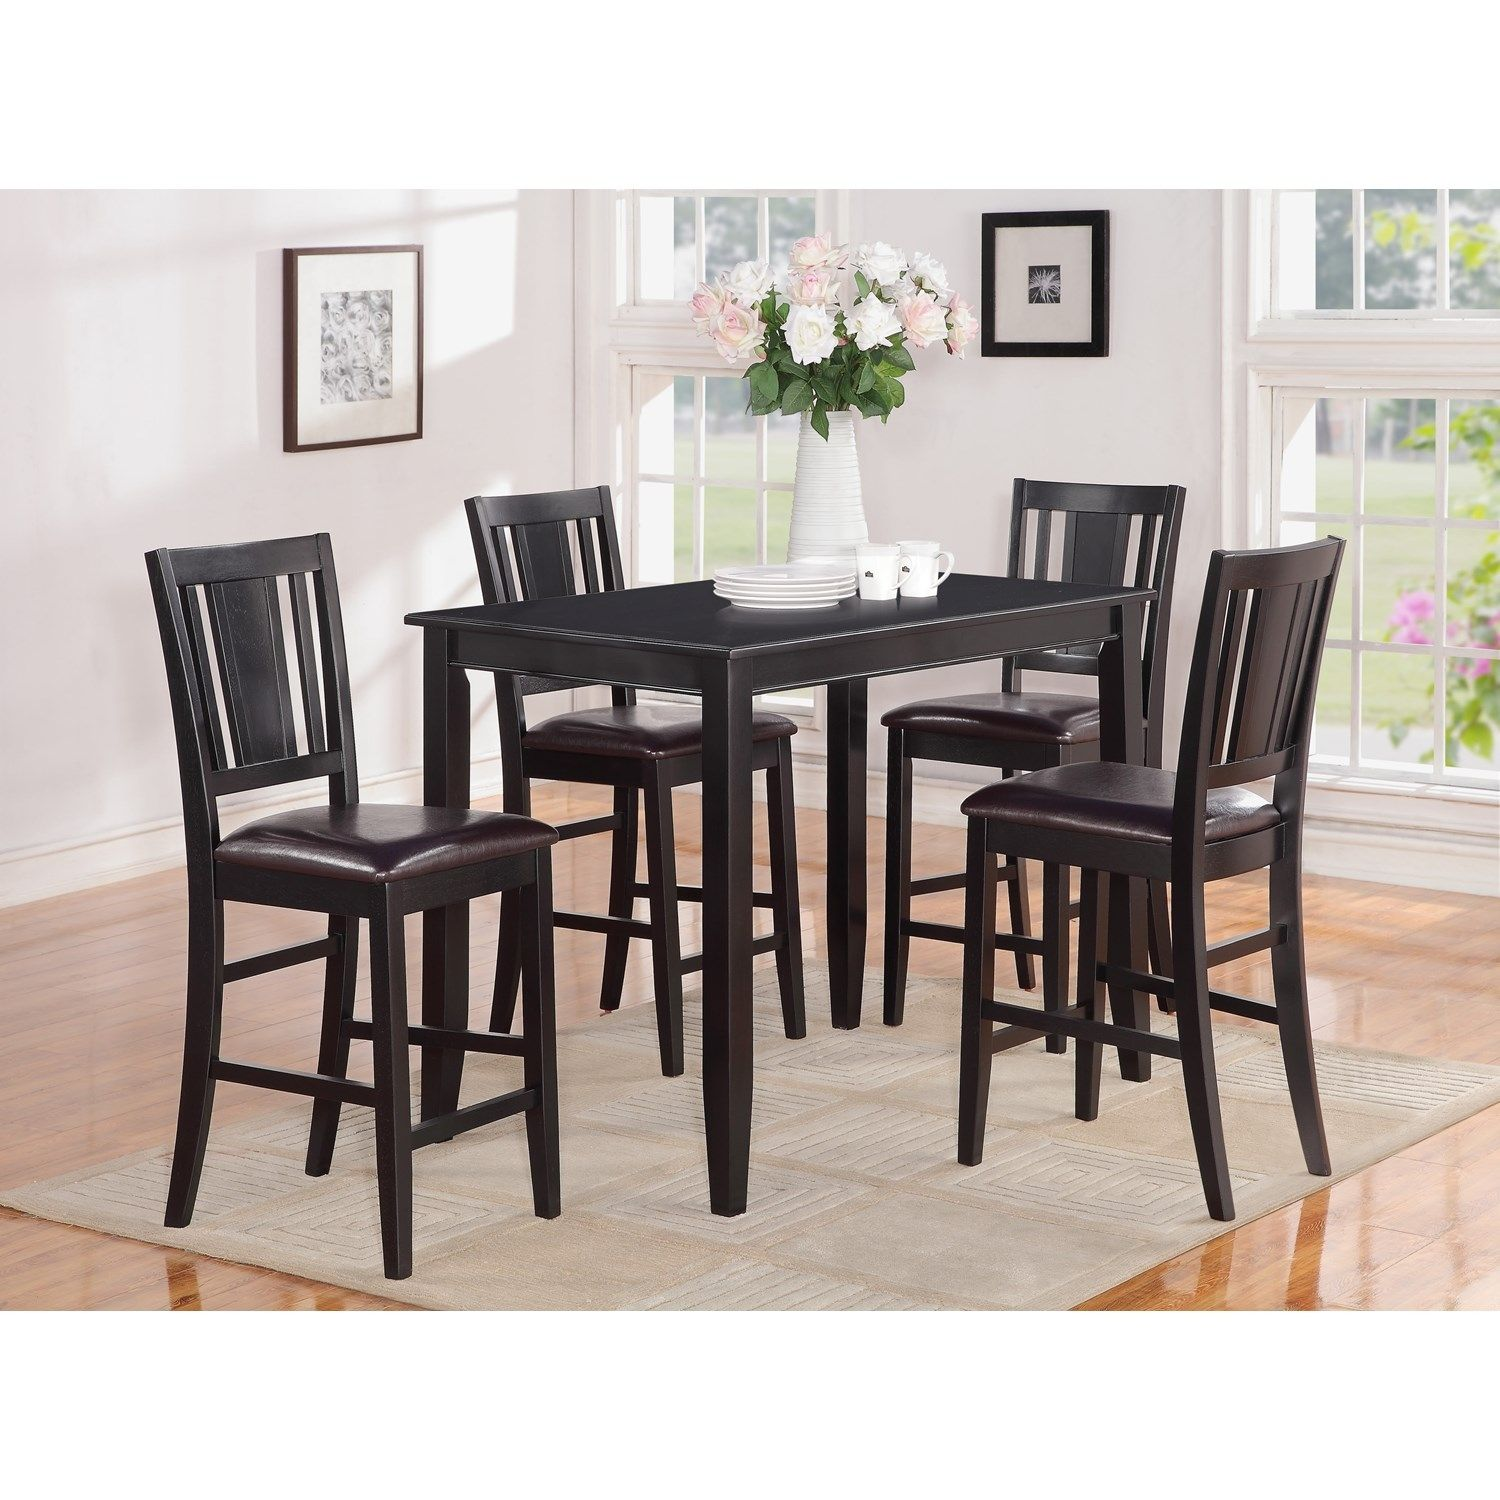 Black Bar Counter Height Table Set With Stool  Httplachpage Magnificent Pub Height Dining Room Sets Inspiration Design